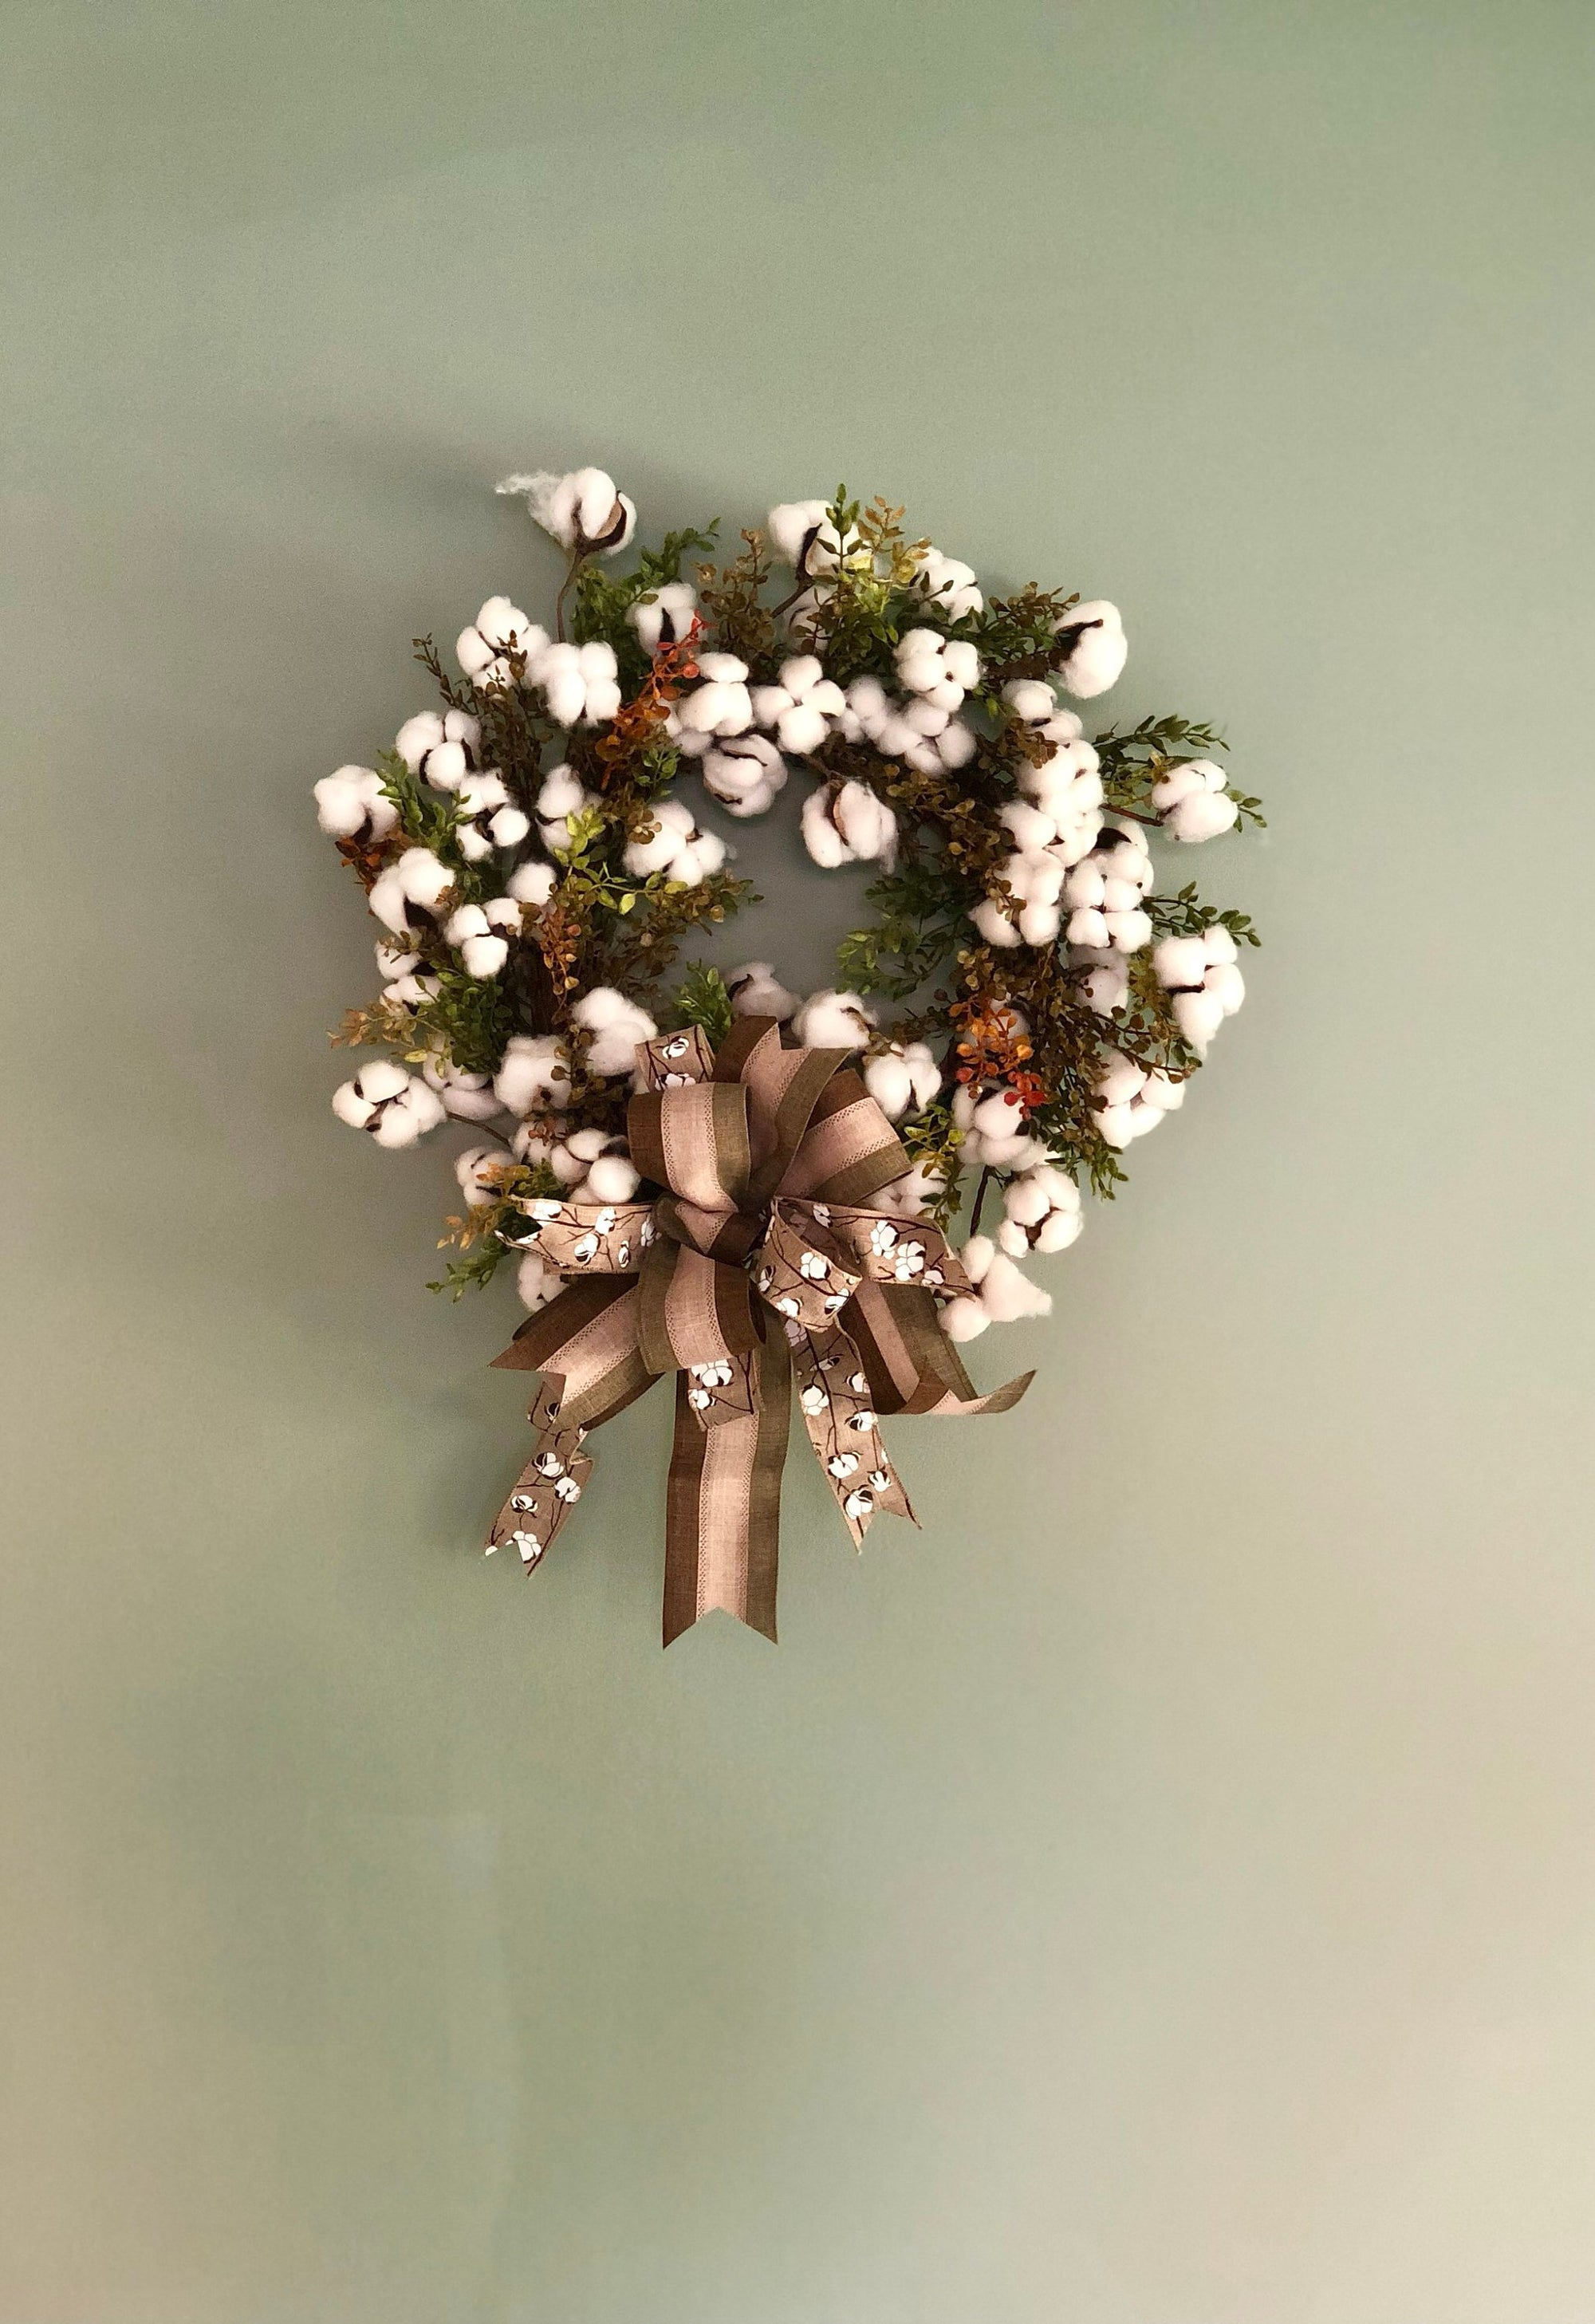 The Carmen Cotton Boll Wreath